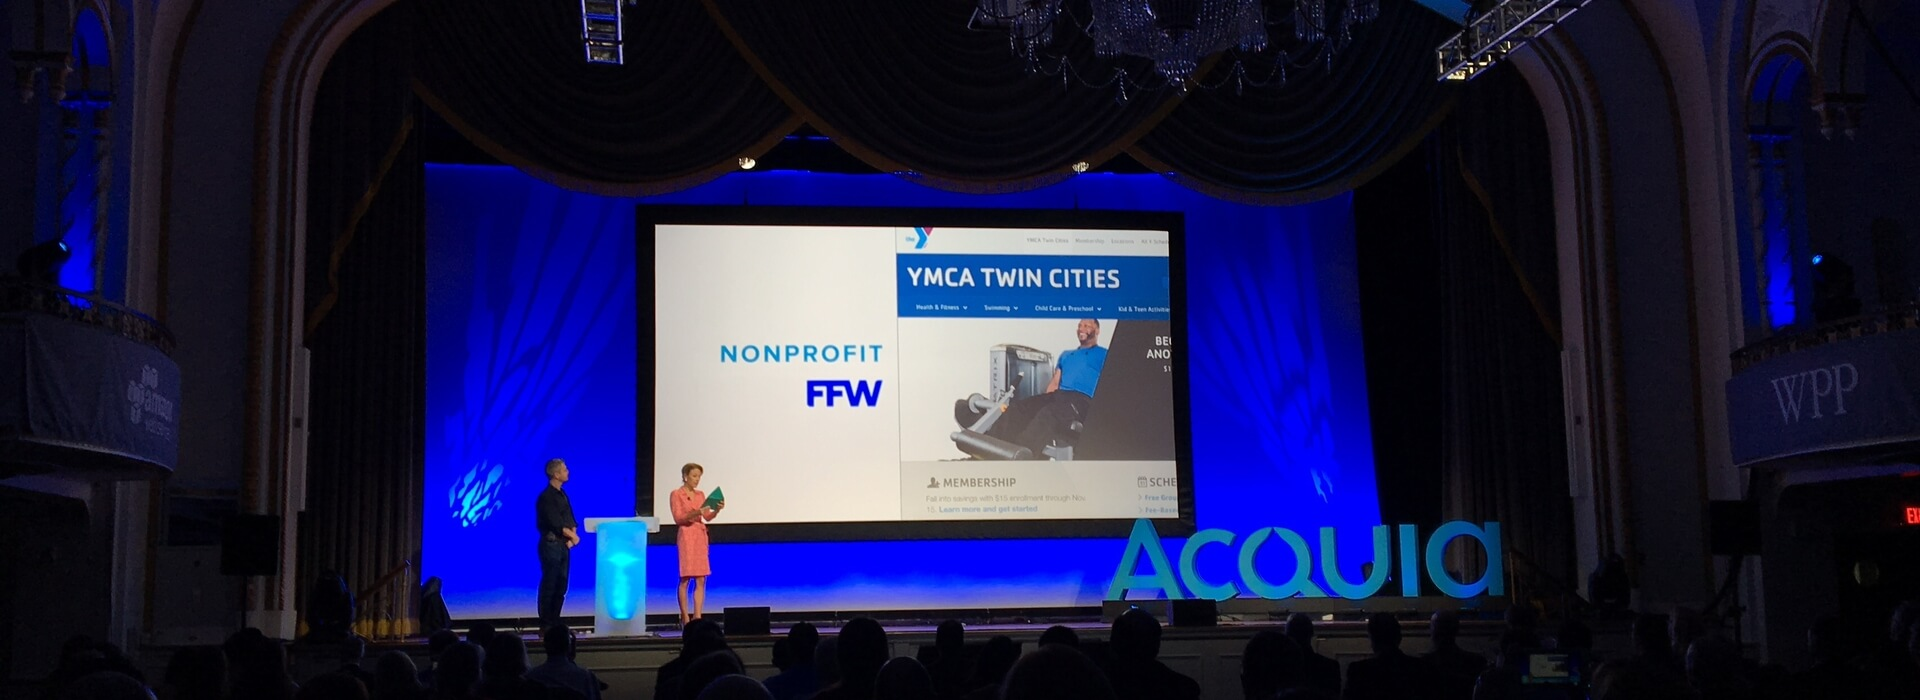 YMCA and FFW Acquia Engage Award